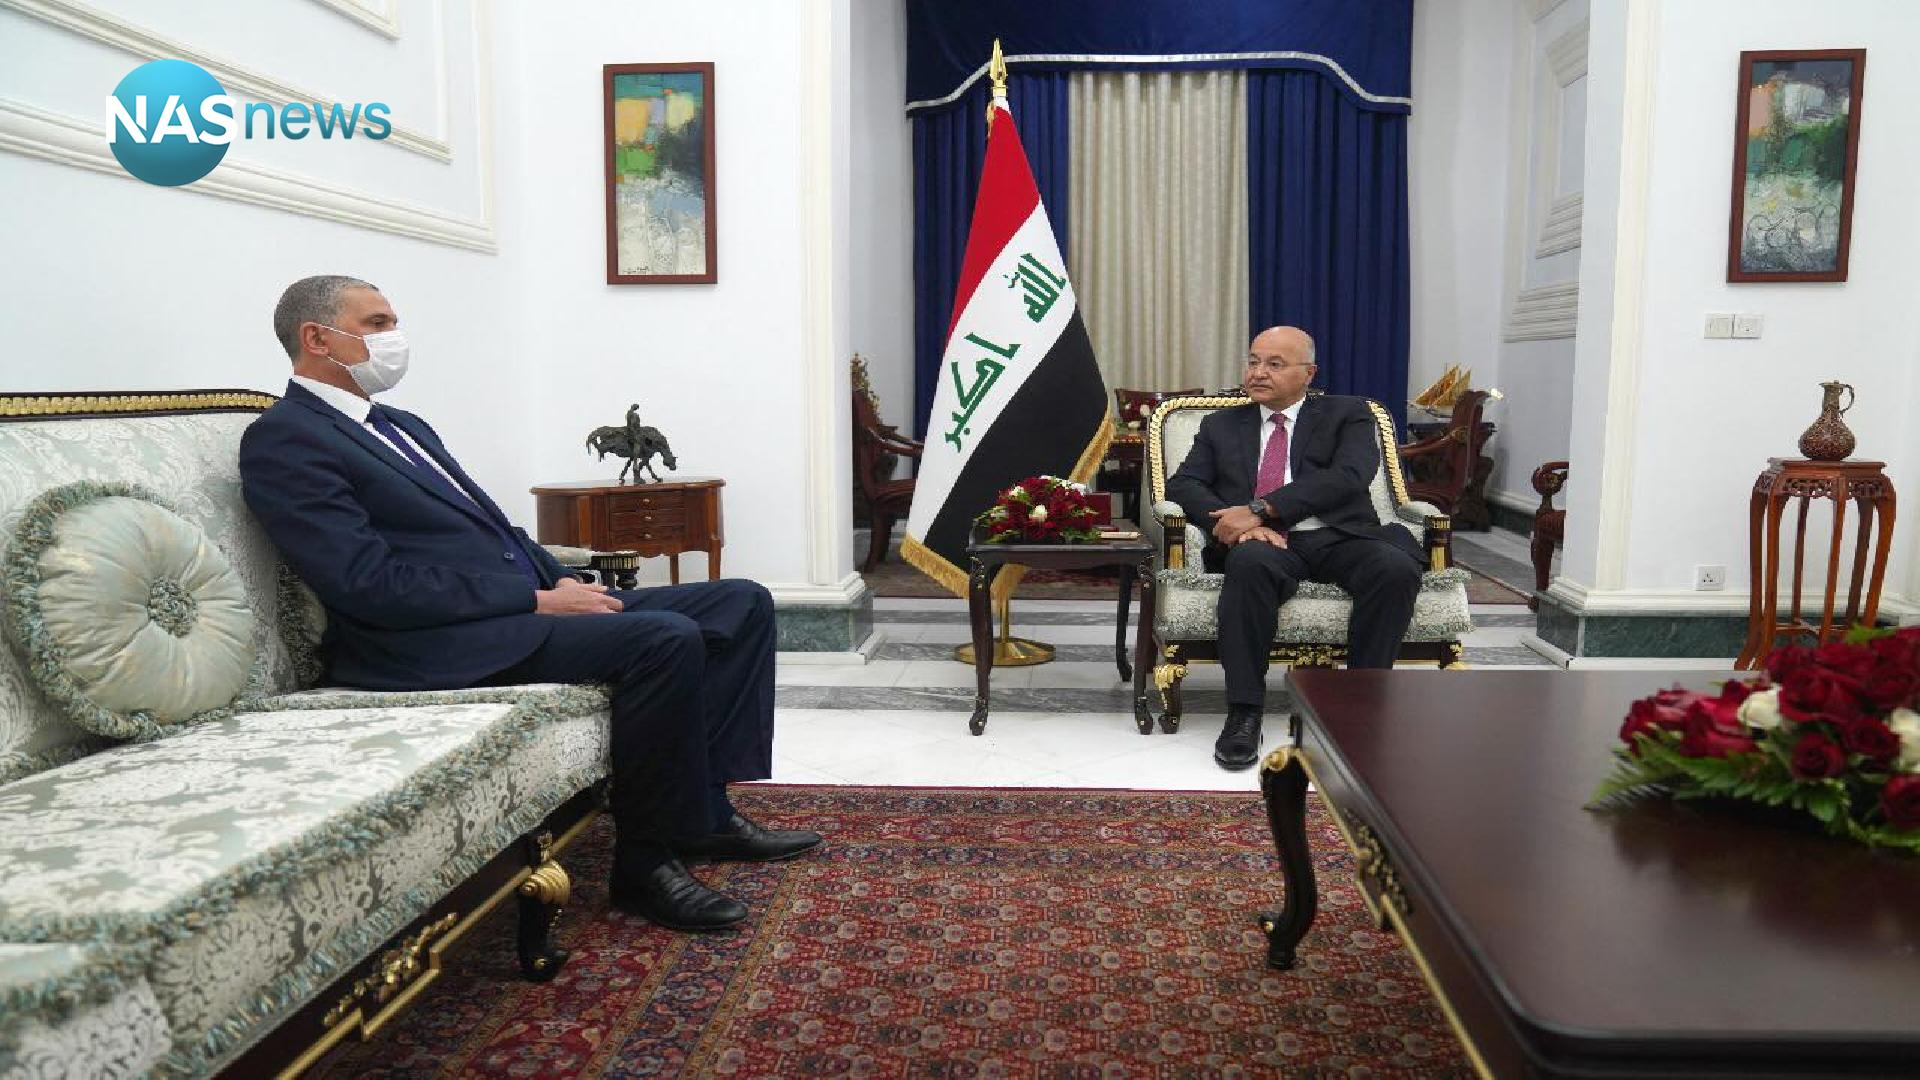 Talks between Barham Salih and the Minister of Interior: The forces are ready to maintain security Edf01e3d8-49856-202101100344